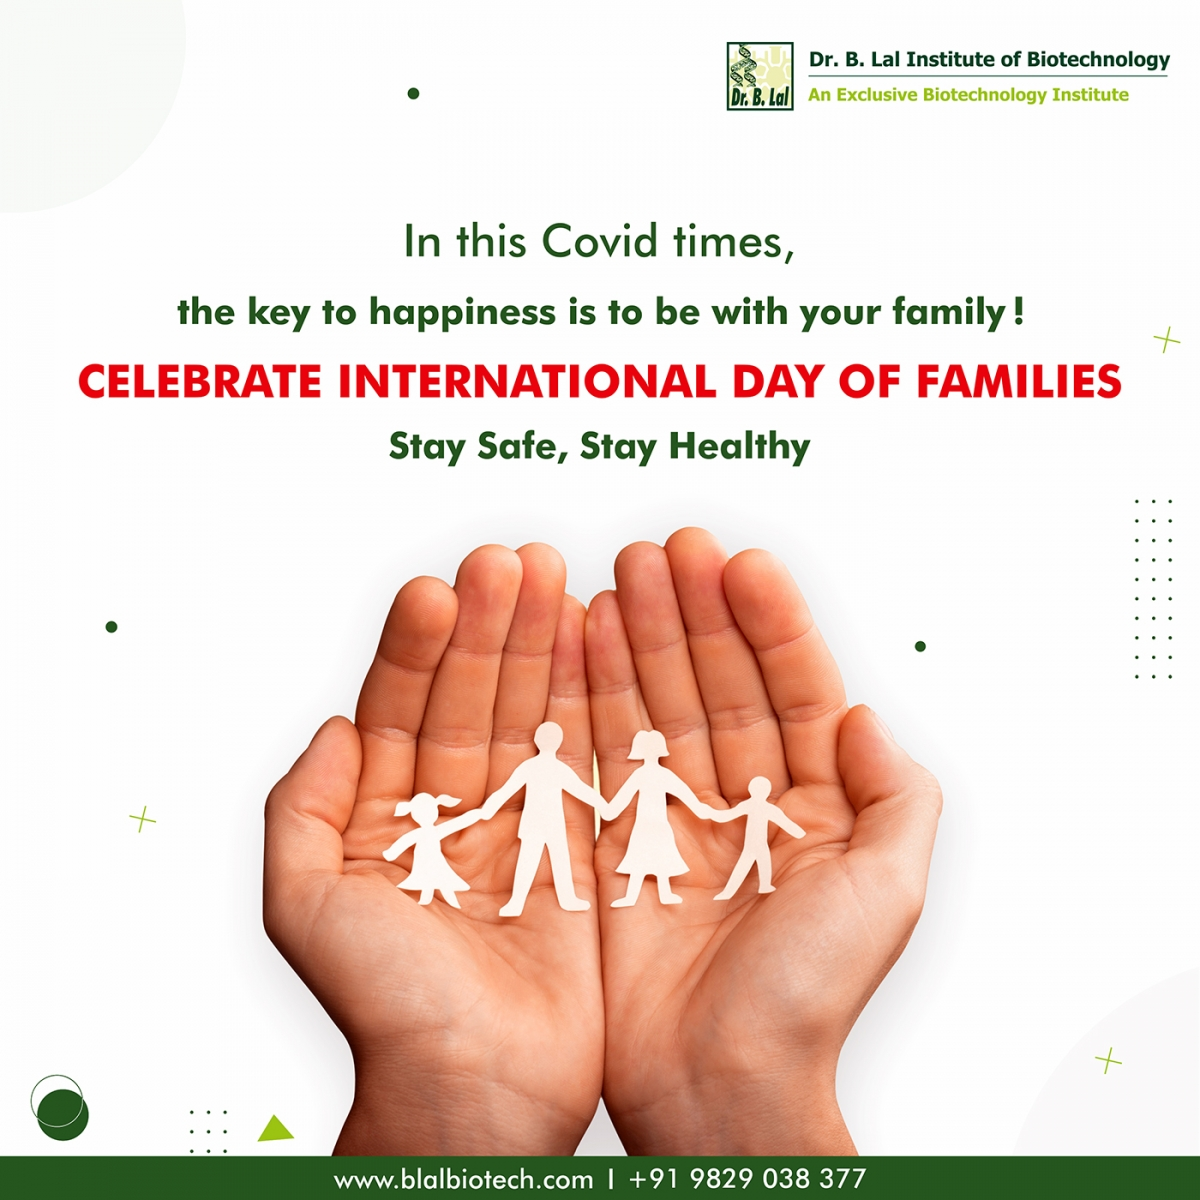 Happy International Day of Families